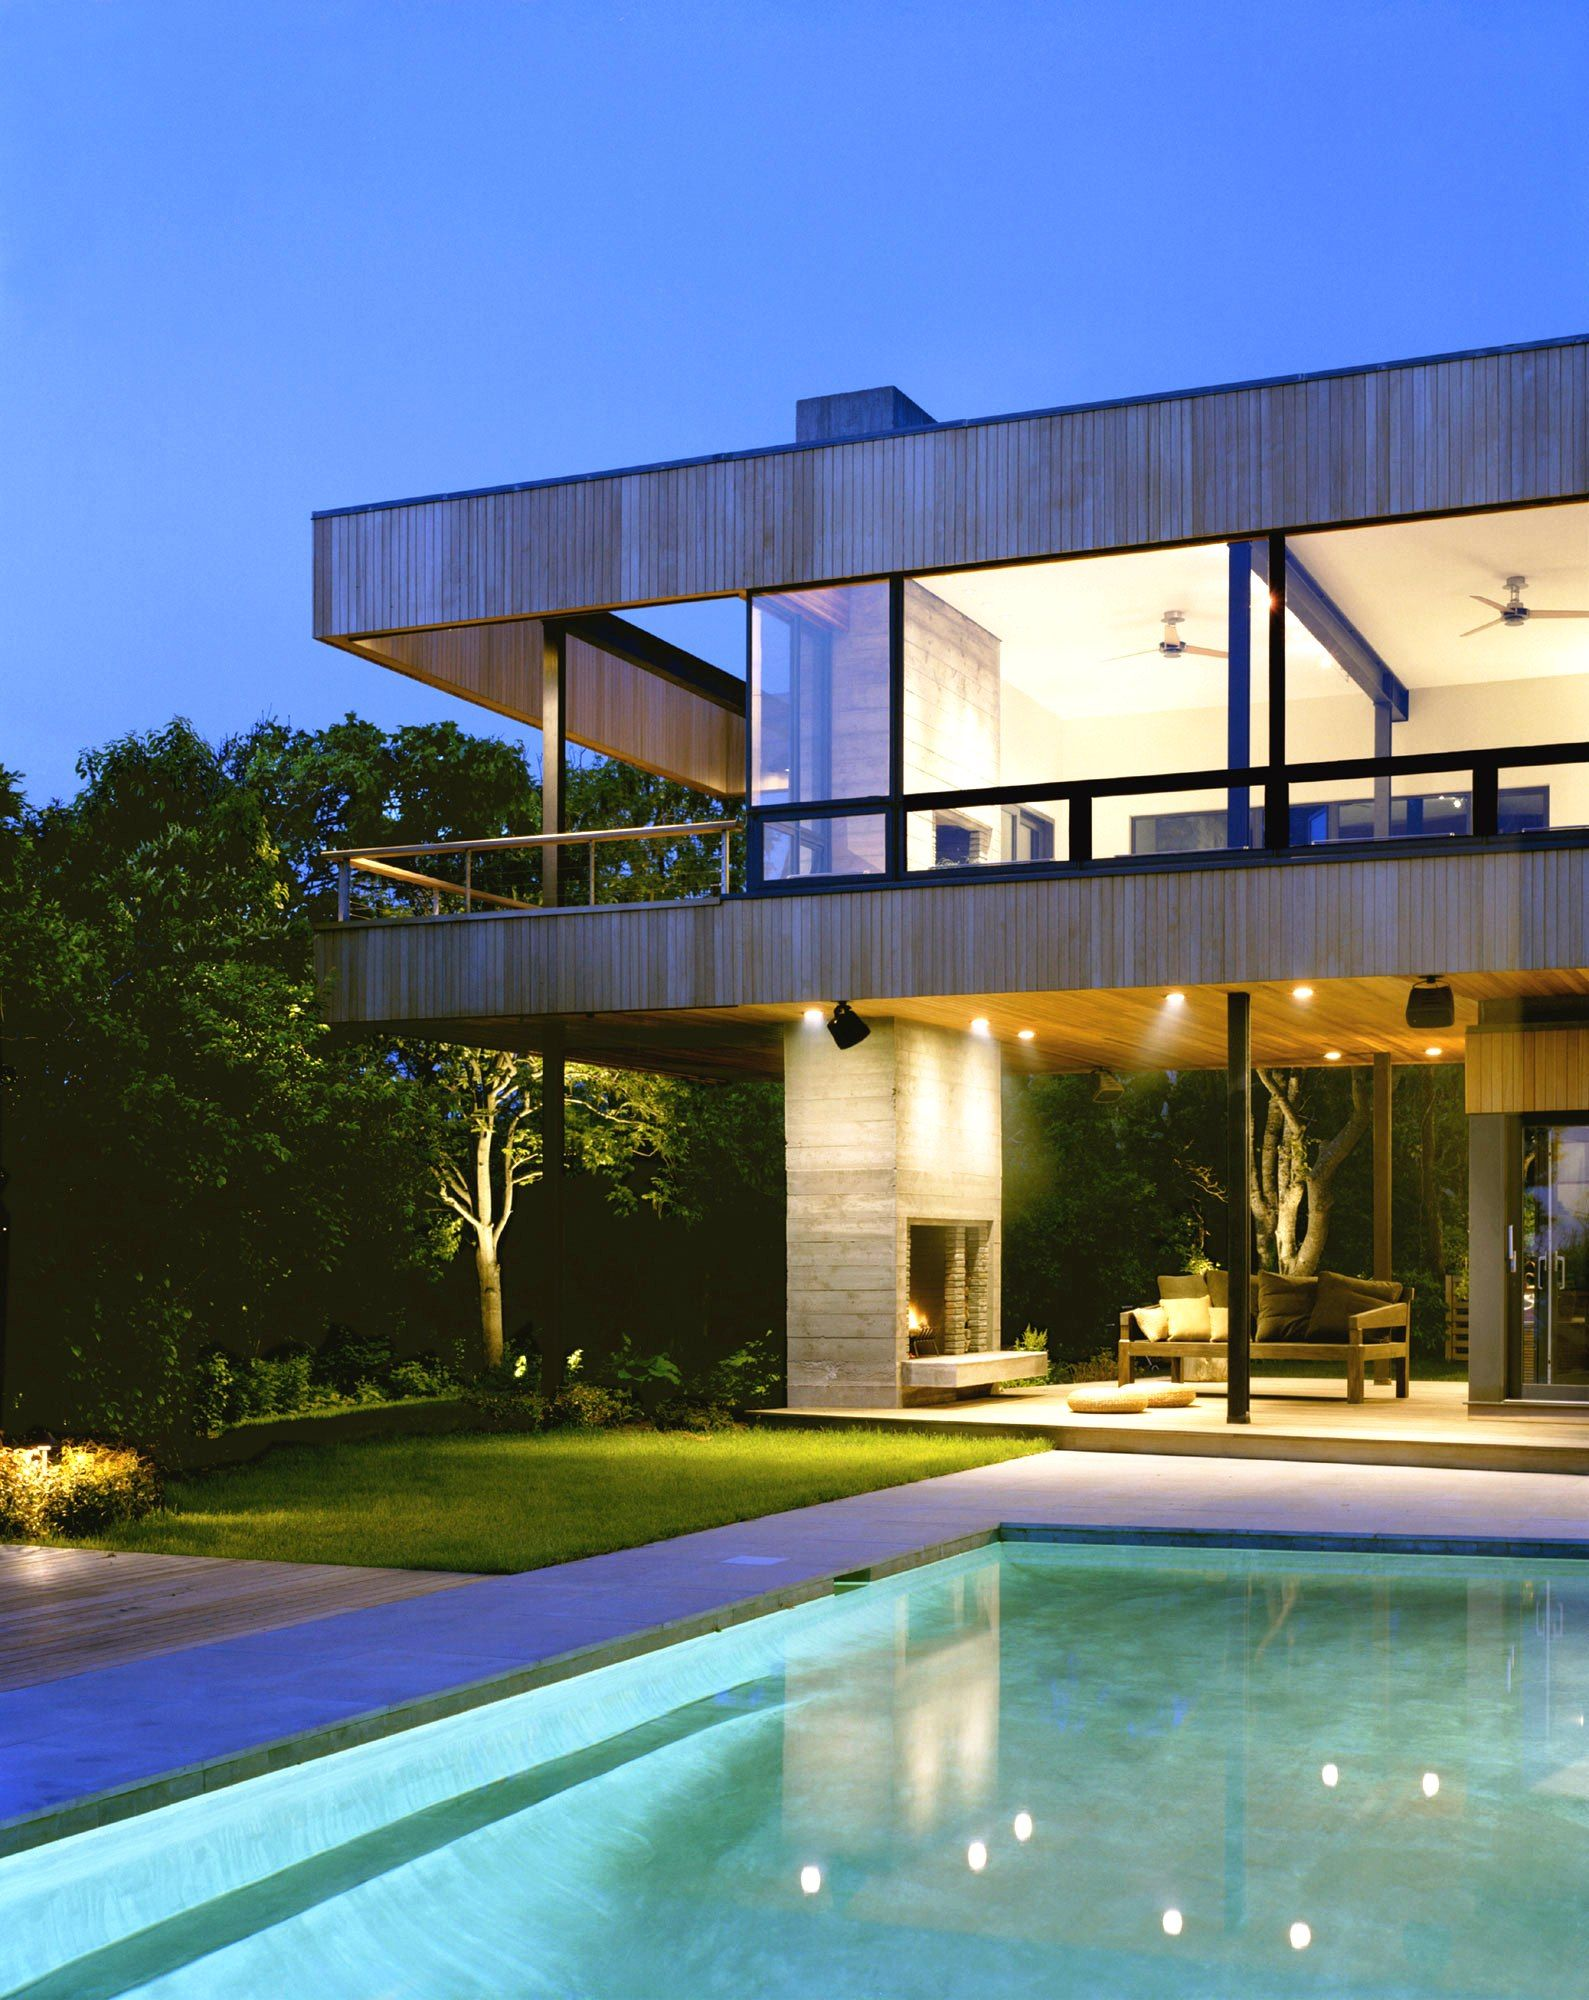 Exterior design excellent evening view of blue modern swimming pool design in minimalist house outdoor